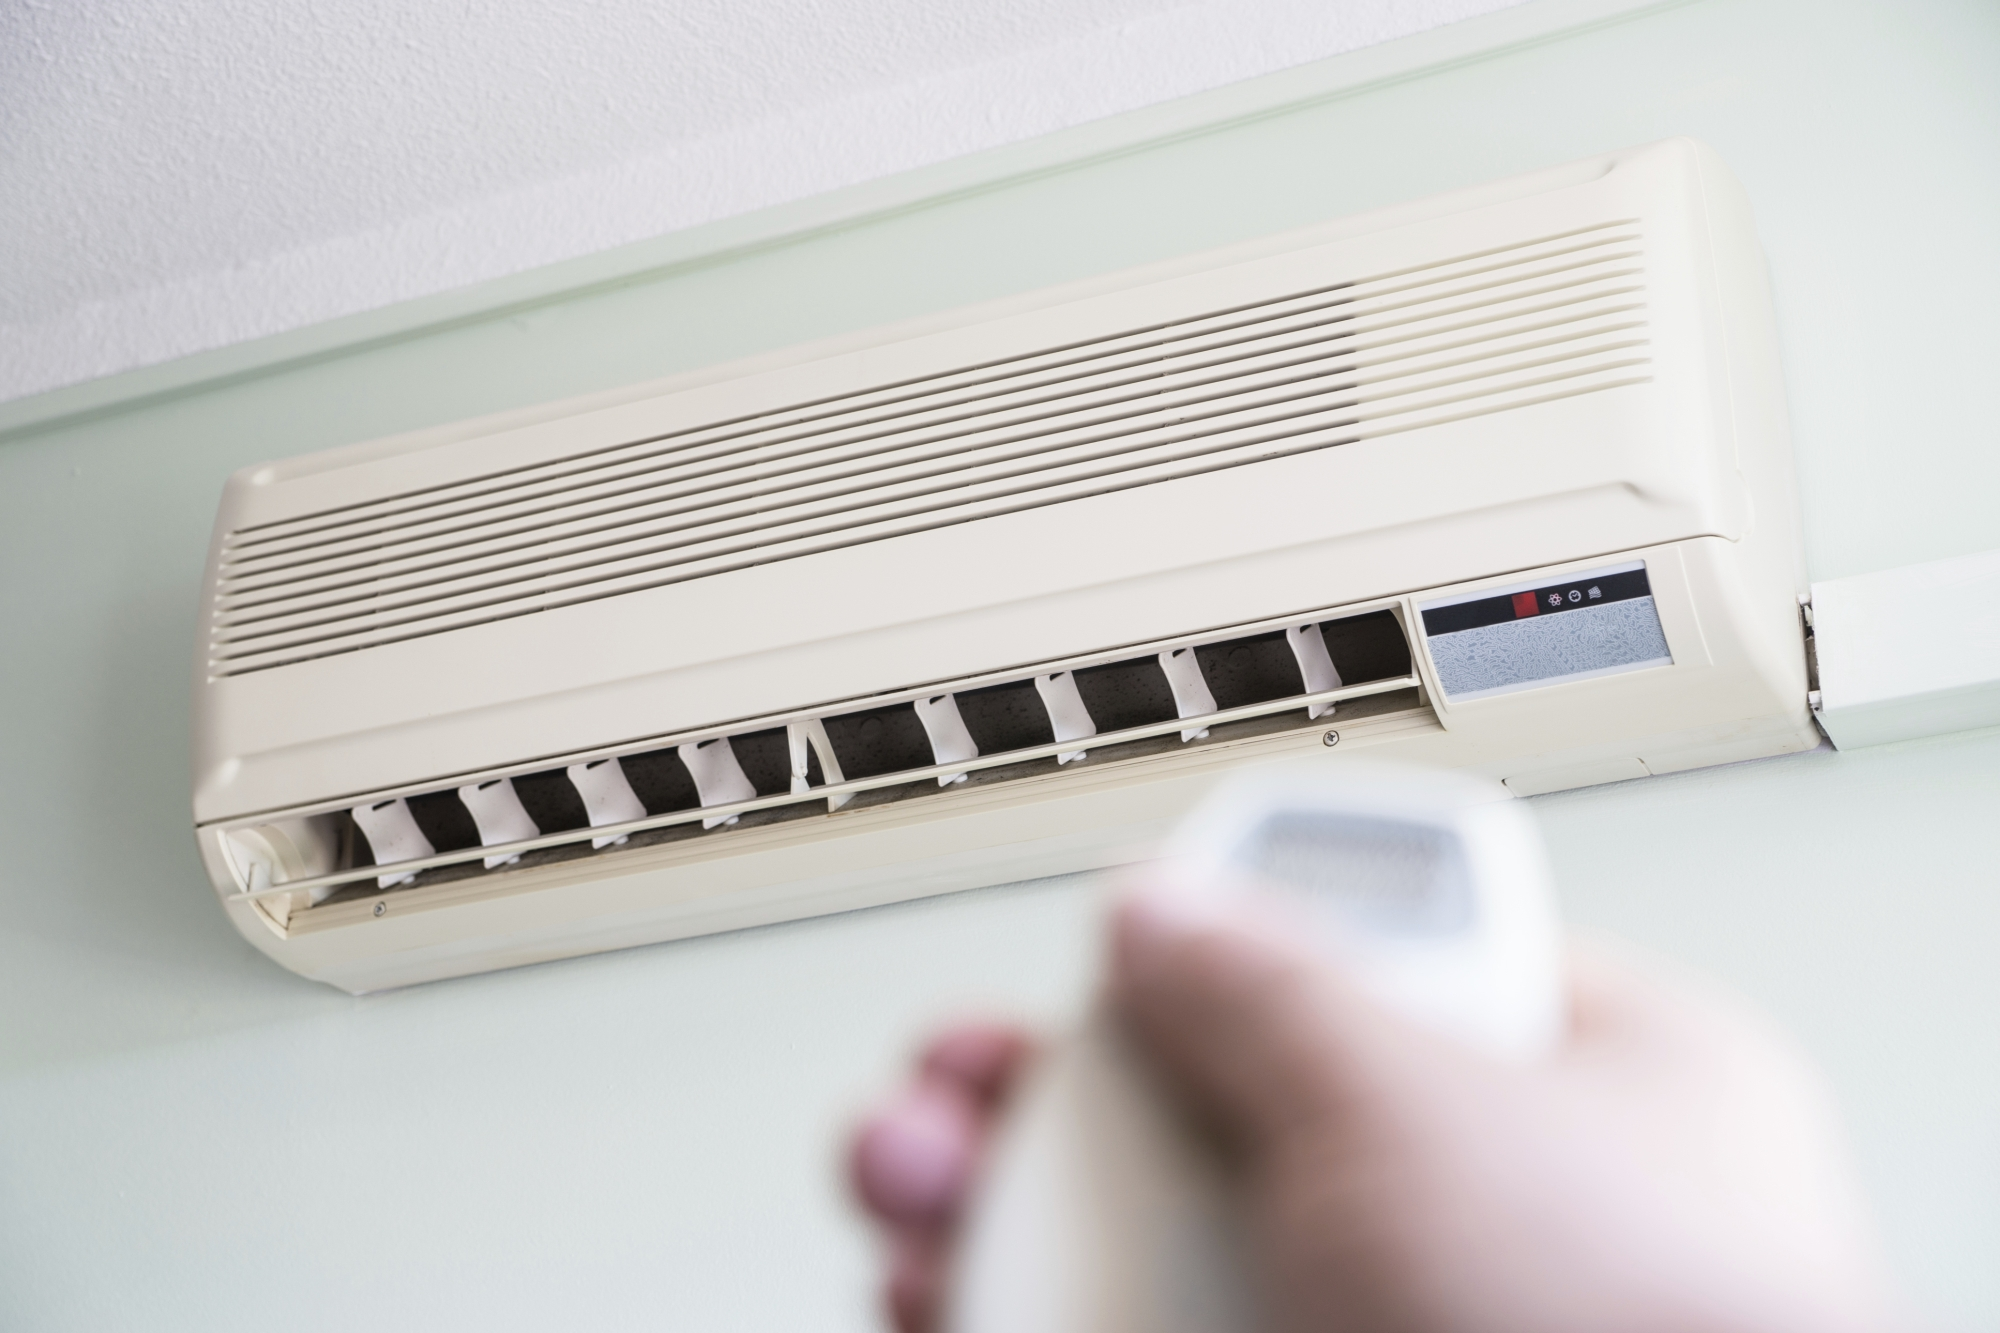 A man has failed to appear in court on charges against an air conditioner installation.